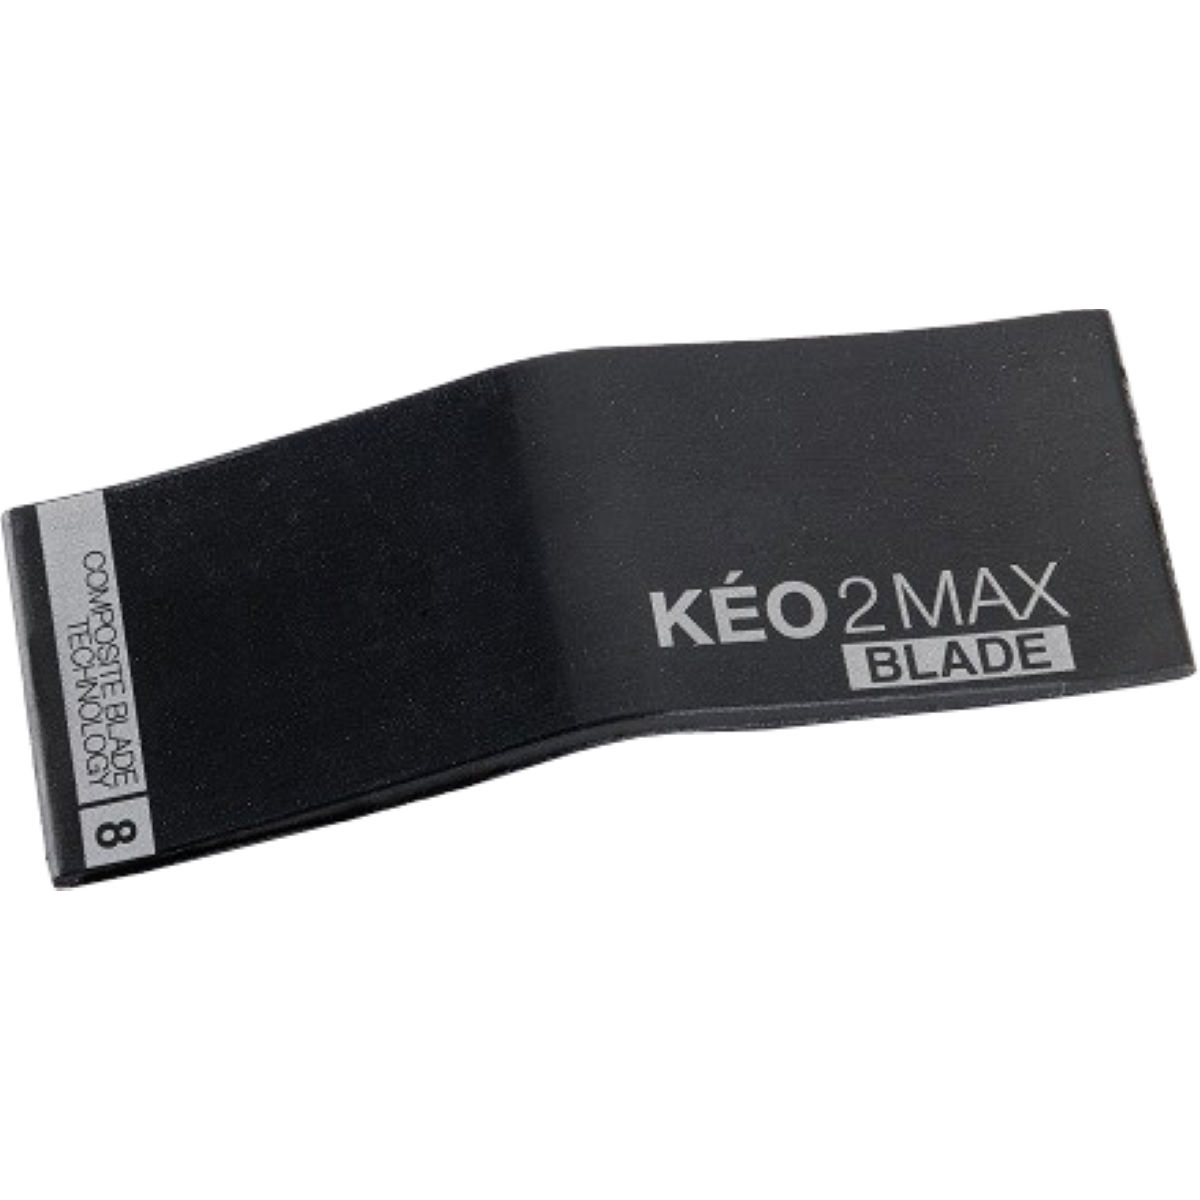 Ressorts de tension Look Keo 2 Max Blade - 8Nm Tension Spring